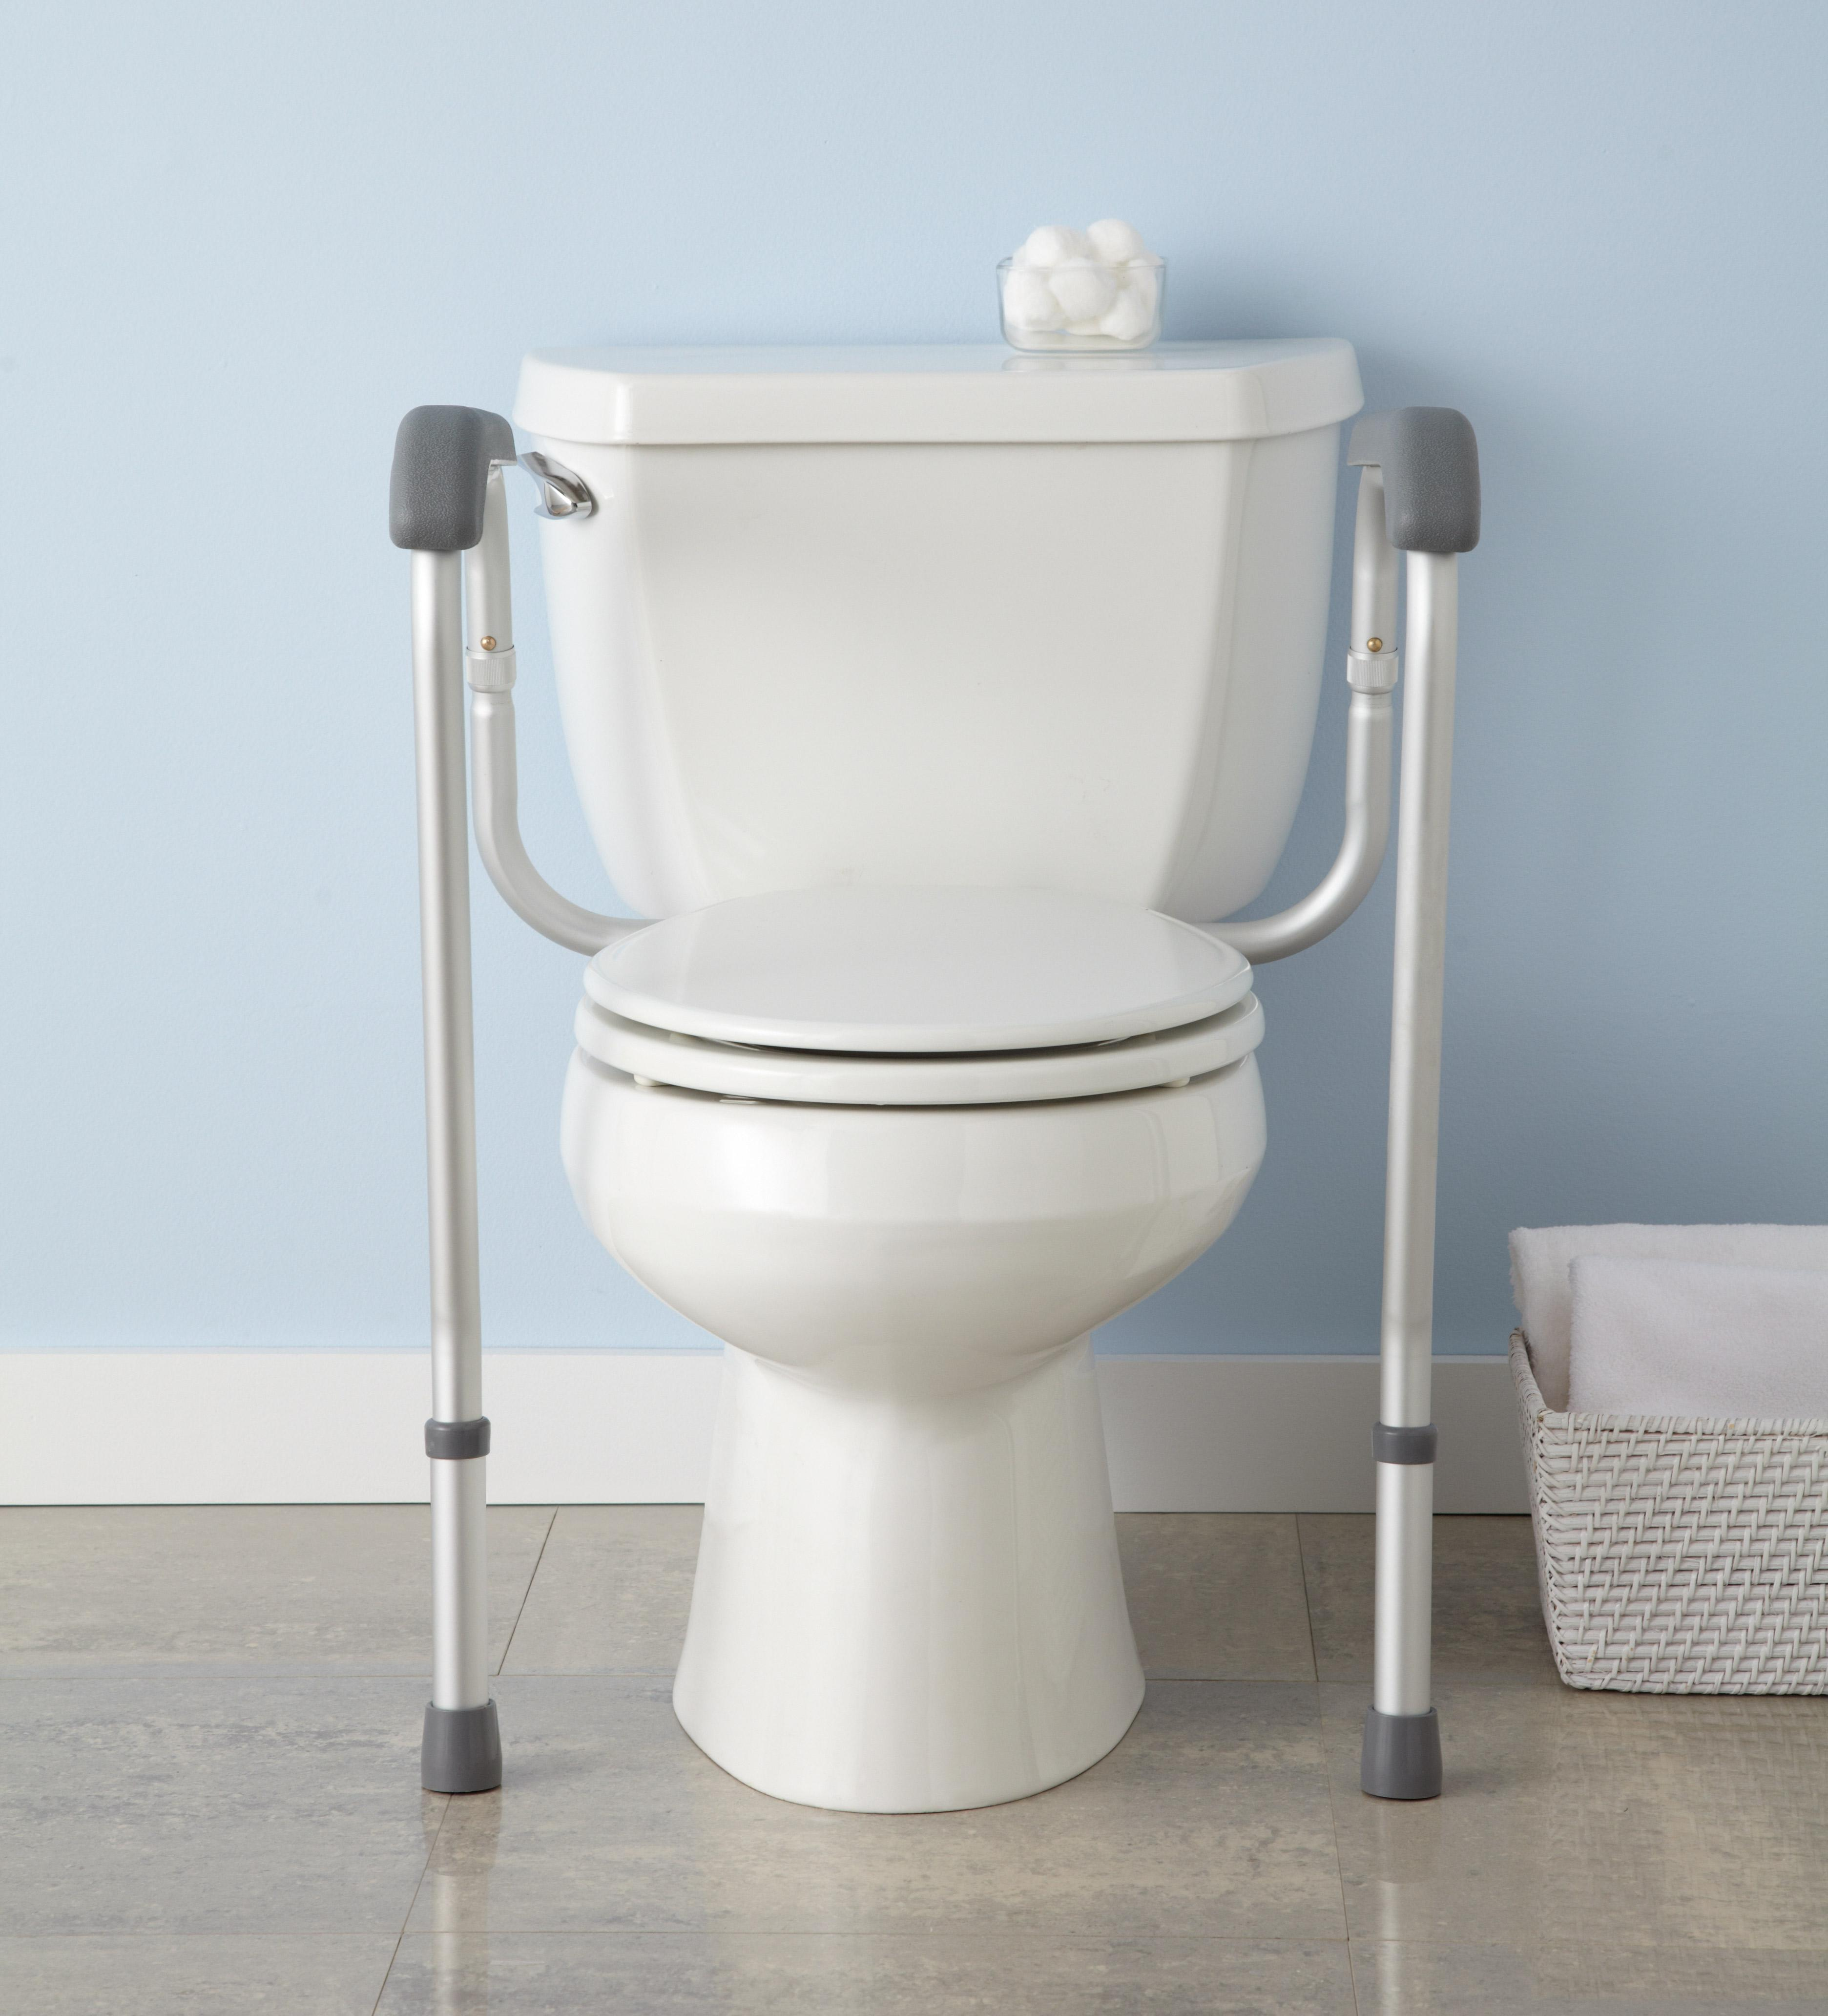 medline toilet safety rails safety frame for toilet with easy installation height